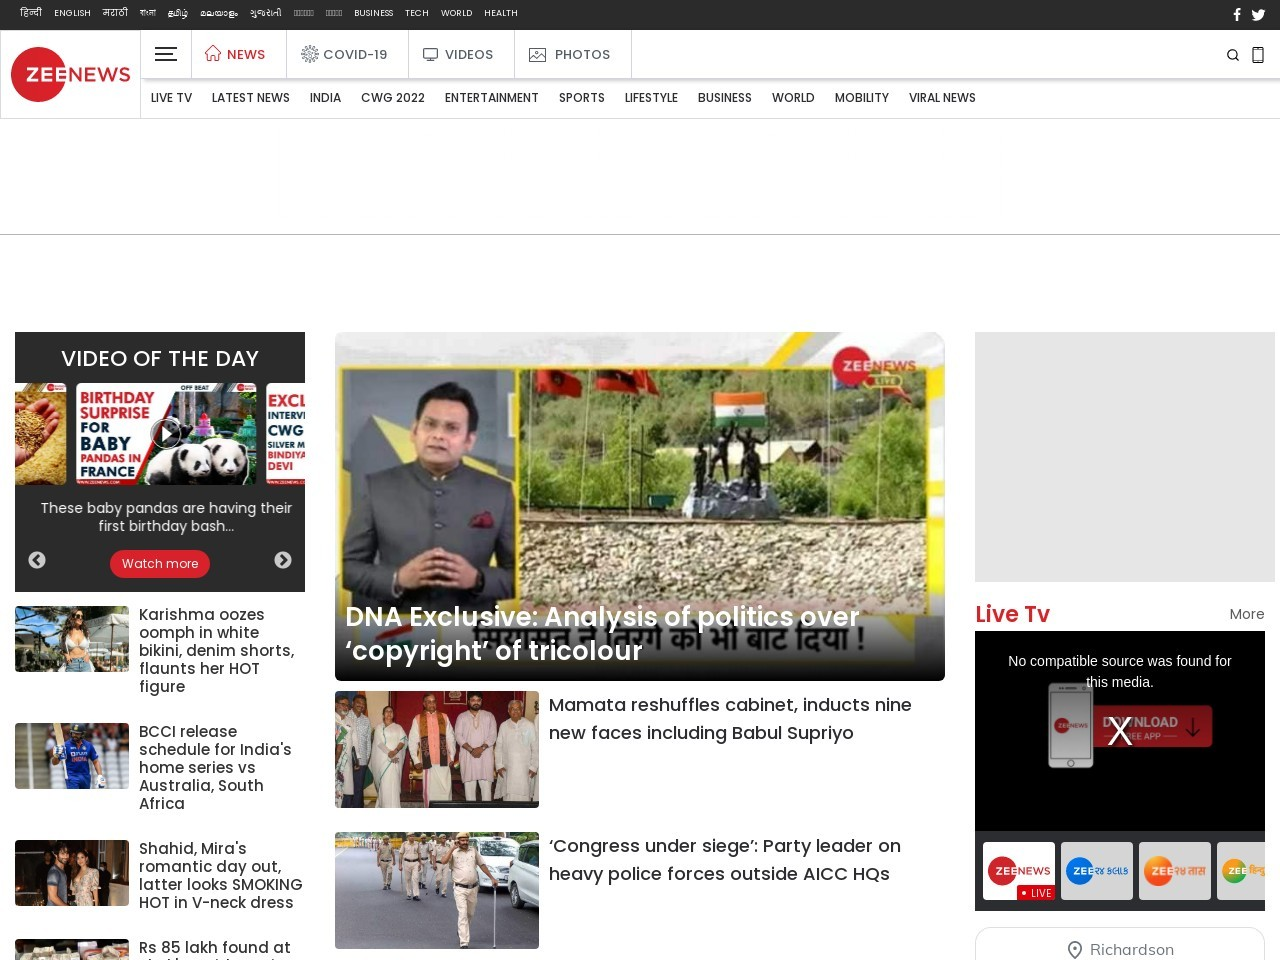 Despite relegation threat, Leicester City give 'unwavering support' to under-fire manager Claudio Ranieri